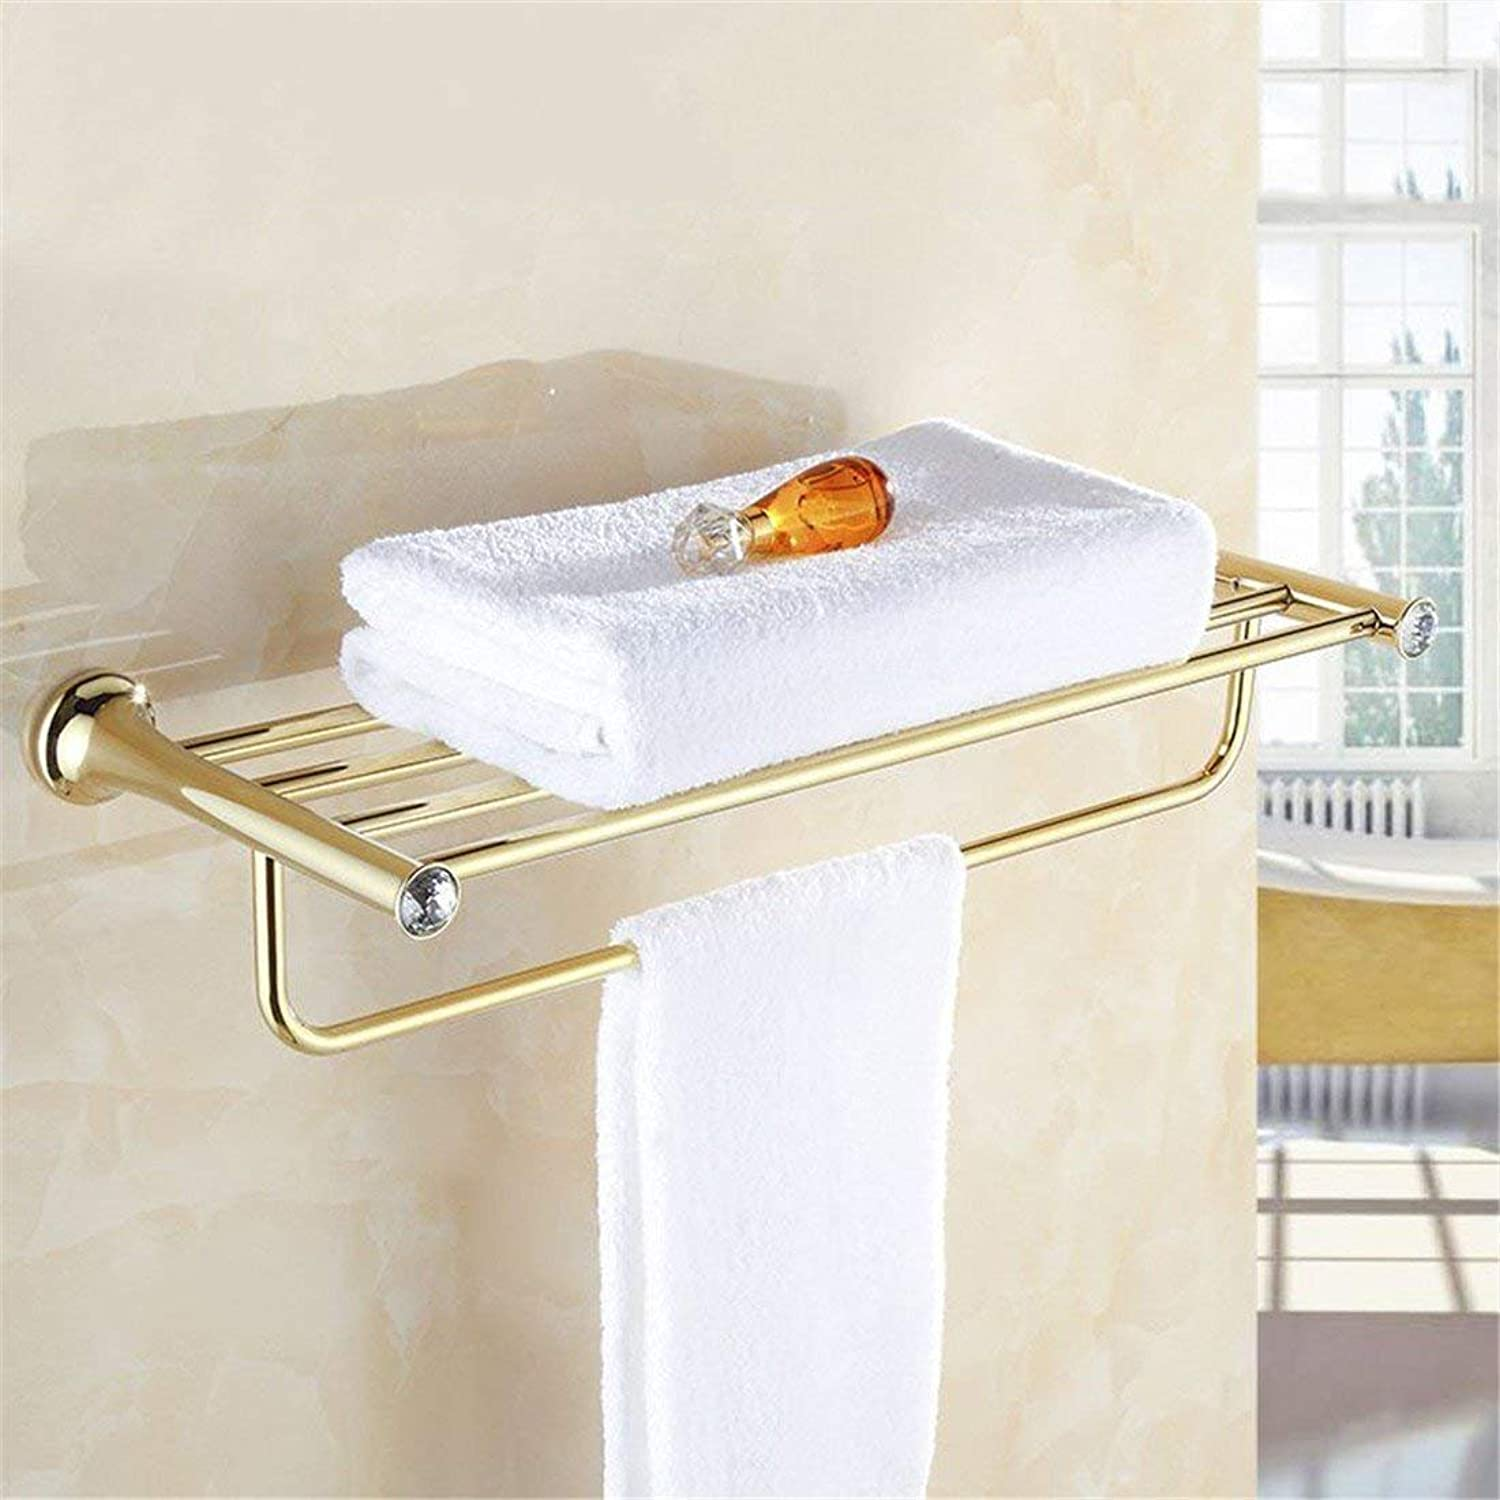 gold Plated Brass Diamond European Accessories Set of Bathroom Furniture Dry-Towels Dry-Towels,Toilet Brush Shelf